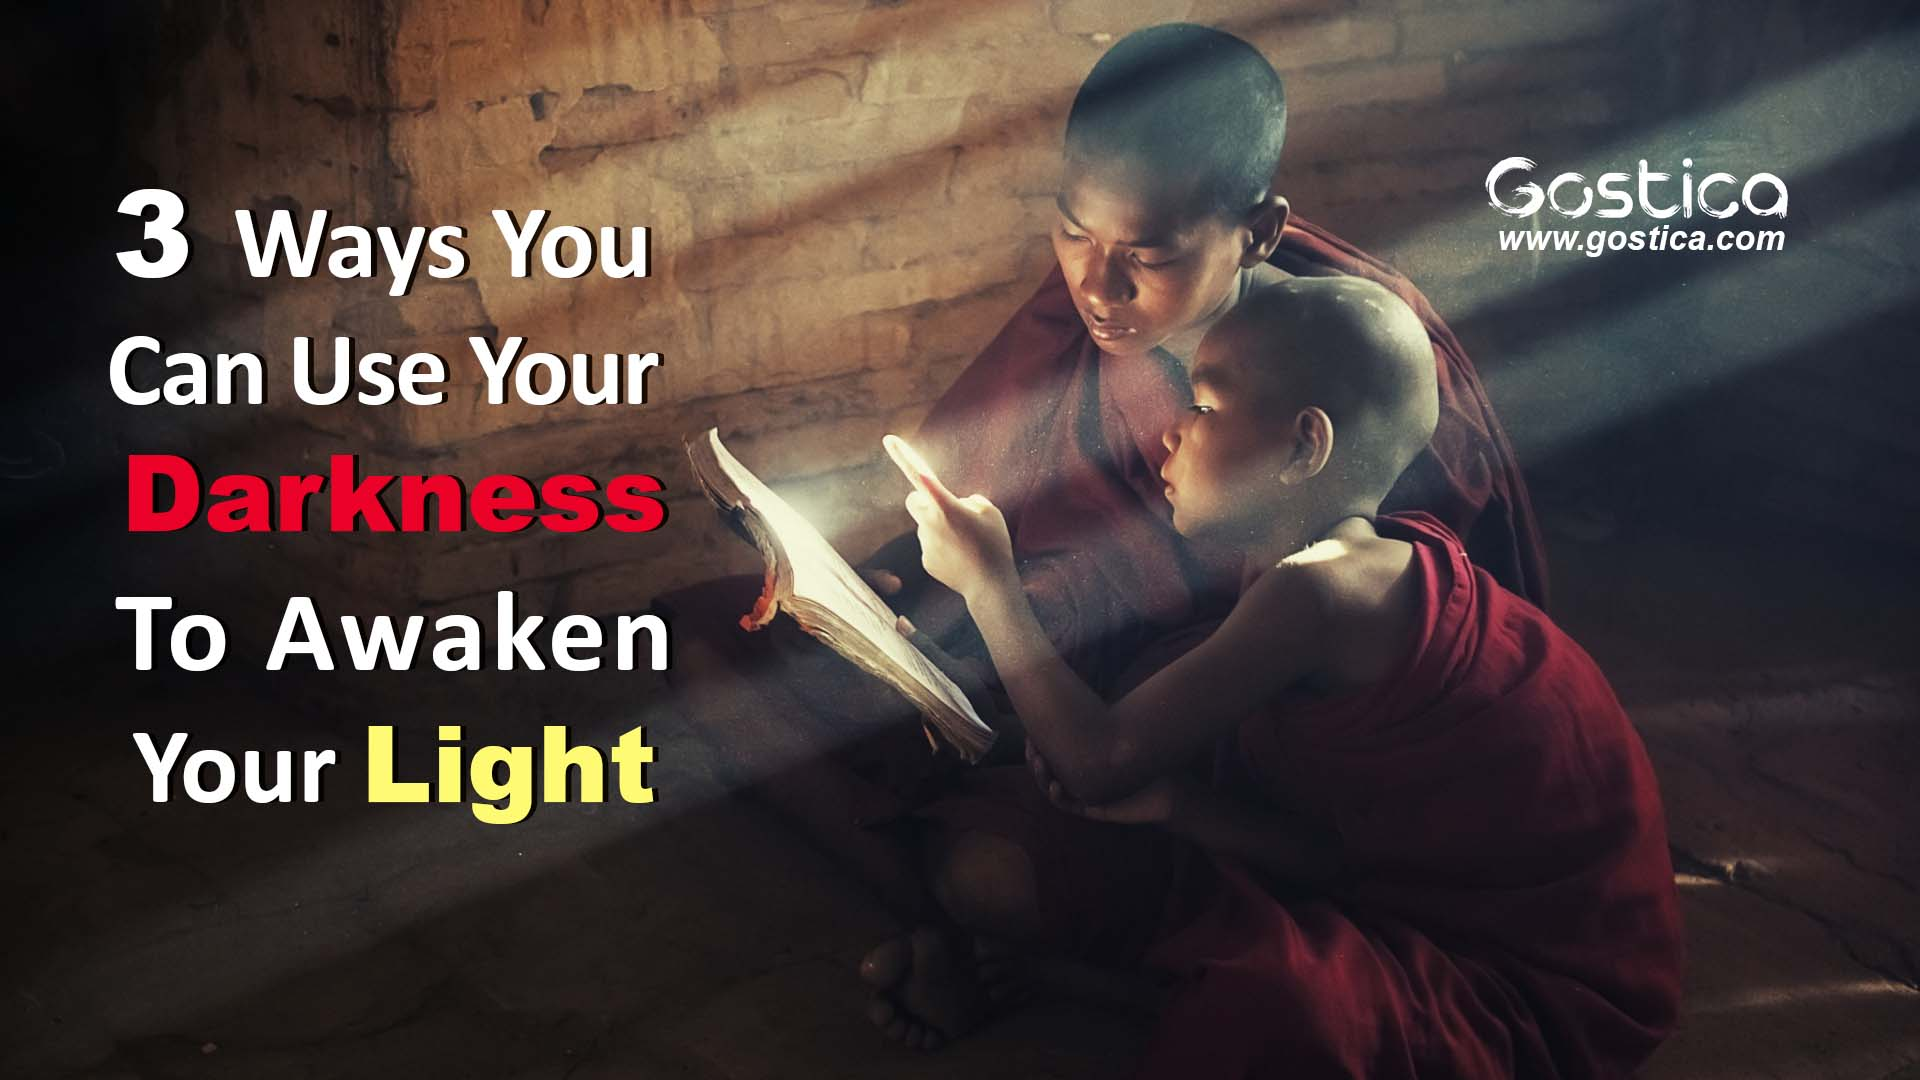 3-Ways-You-Can-Use-Your-Darkness-To-Awaken-Your-Light.jpg